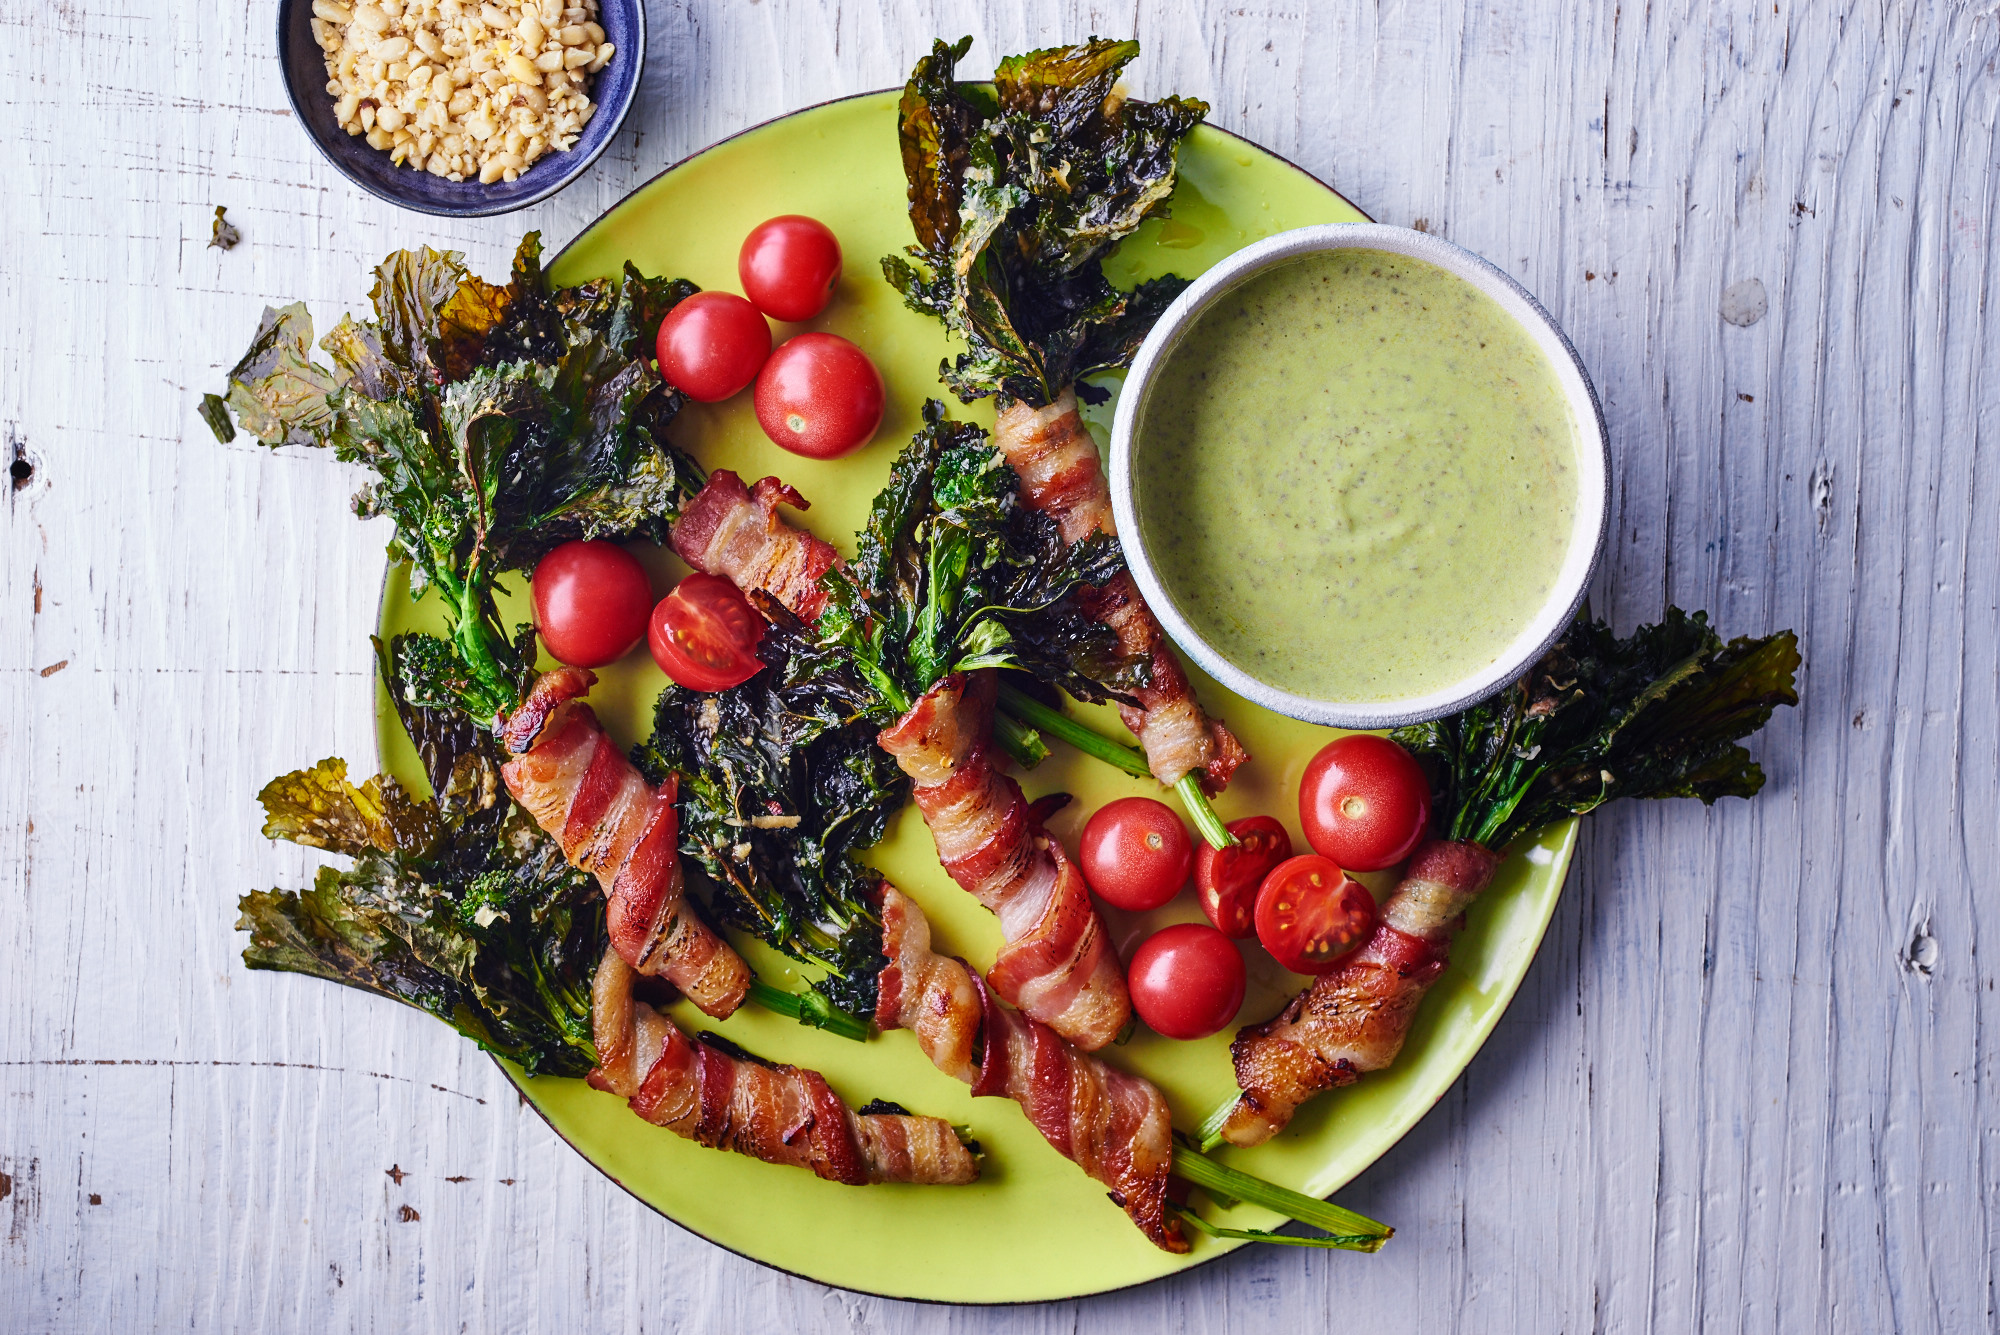 Bacon Wrapped Broccoli Rabe Platter